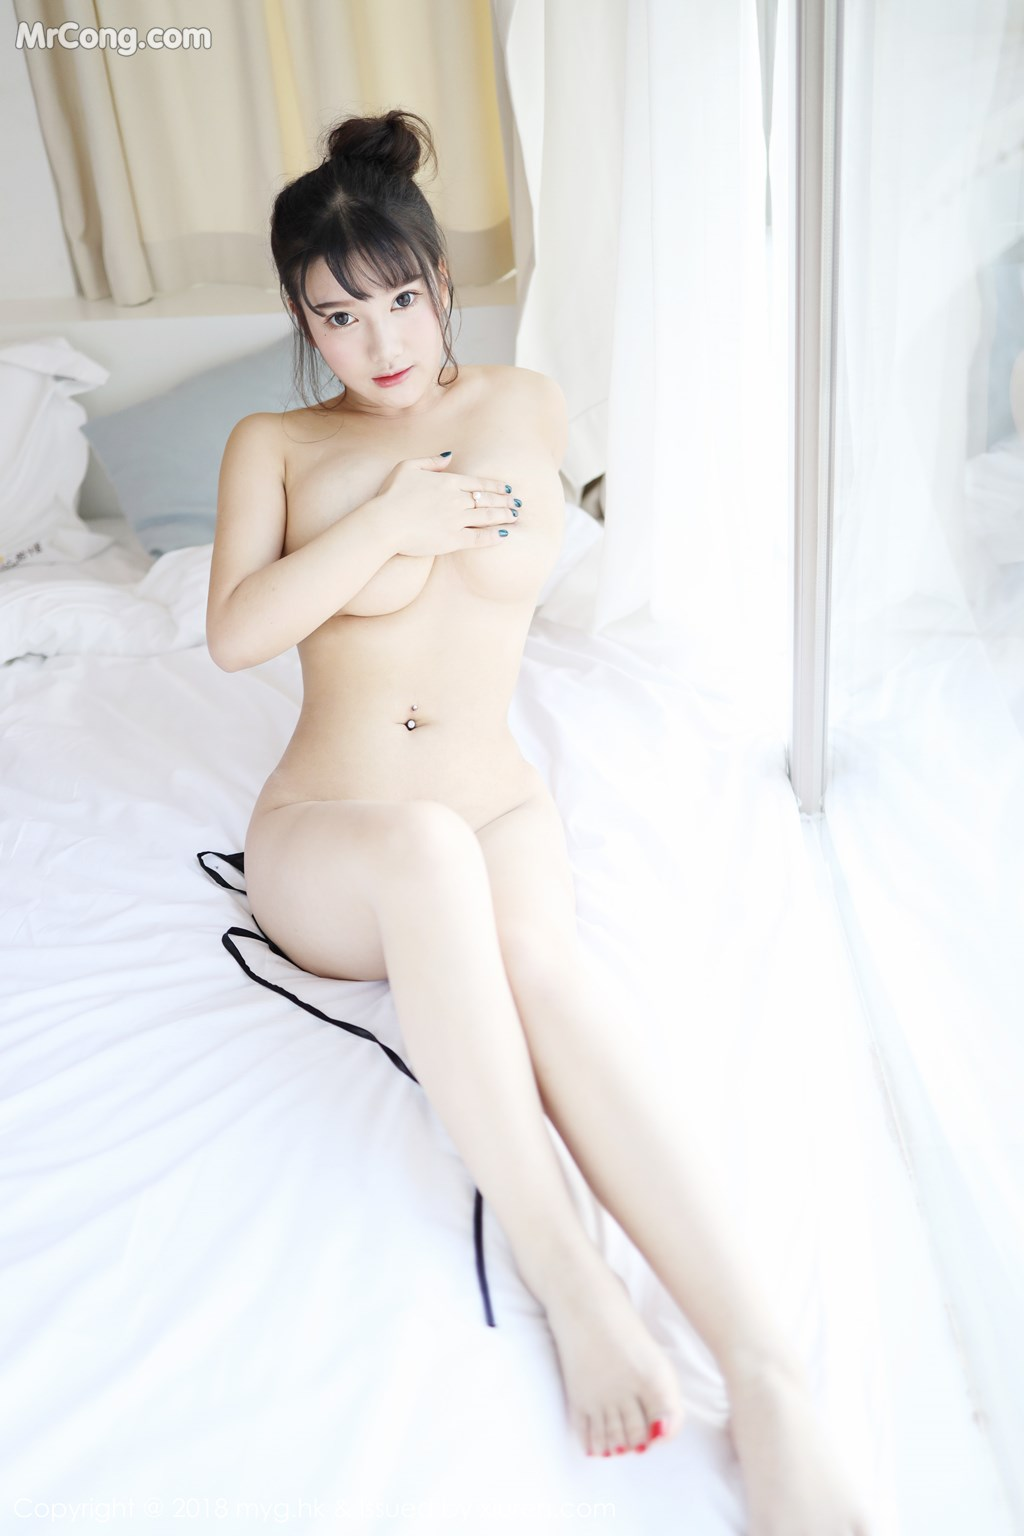 Image MyGirl-Vol.331-Xiao-You-Nai-MrCong.com-013 in post MyGirl Vol.331: Người mẫu Xiao You Nai (小尤奈) (47 ảnh)